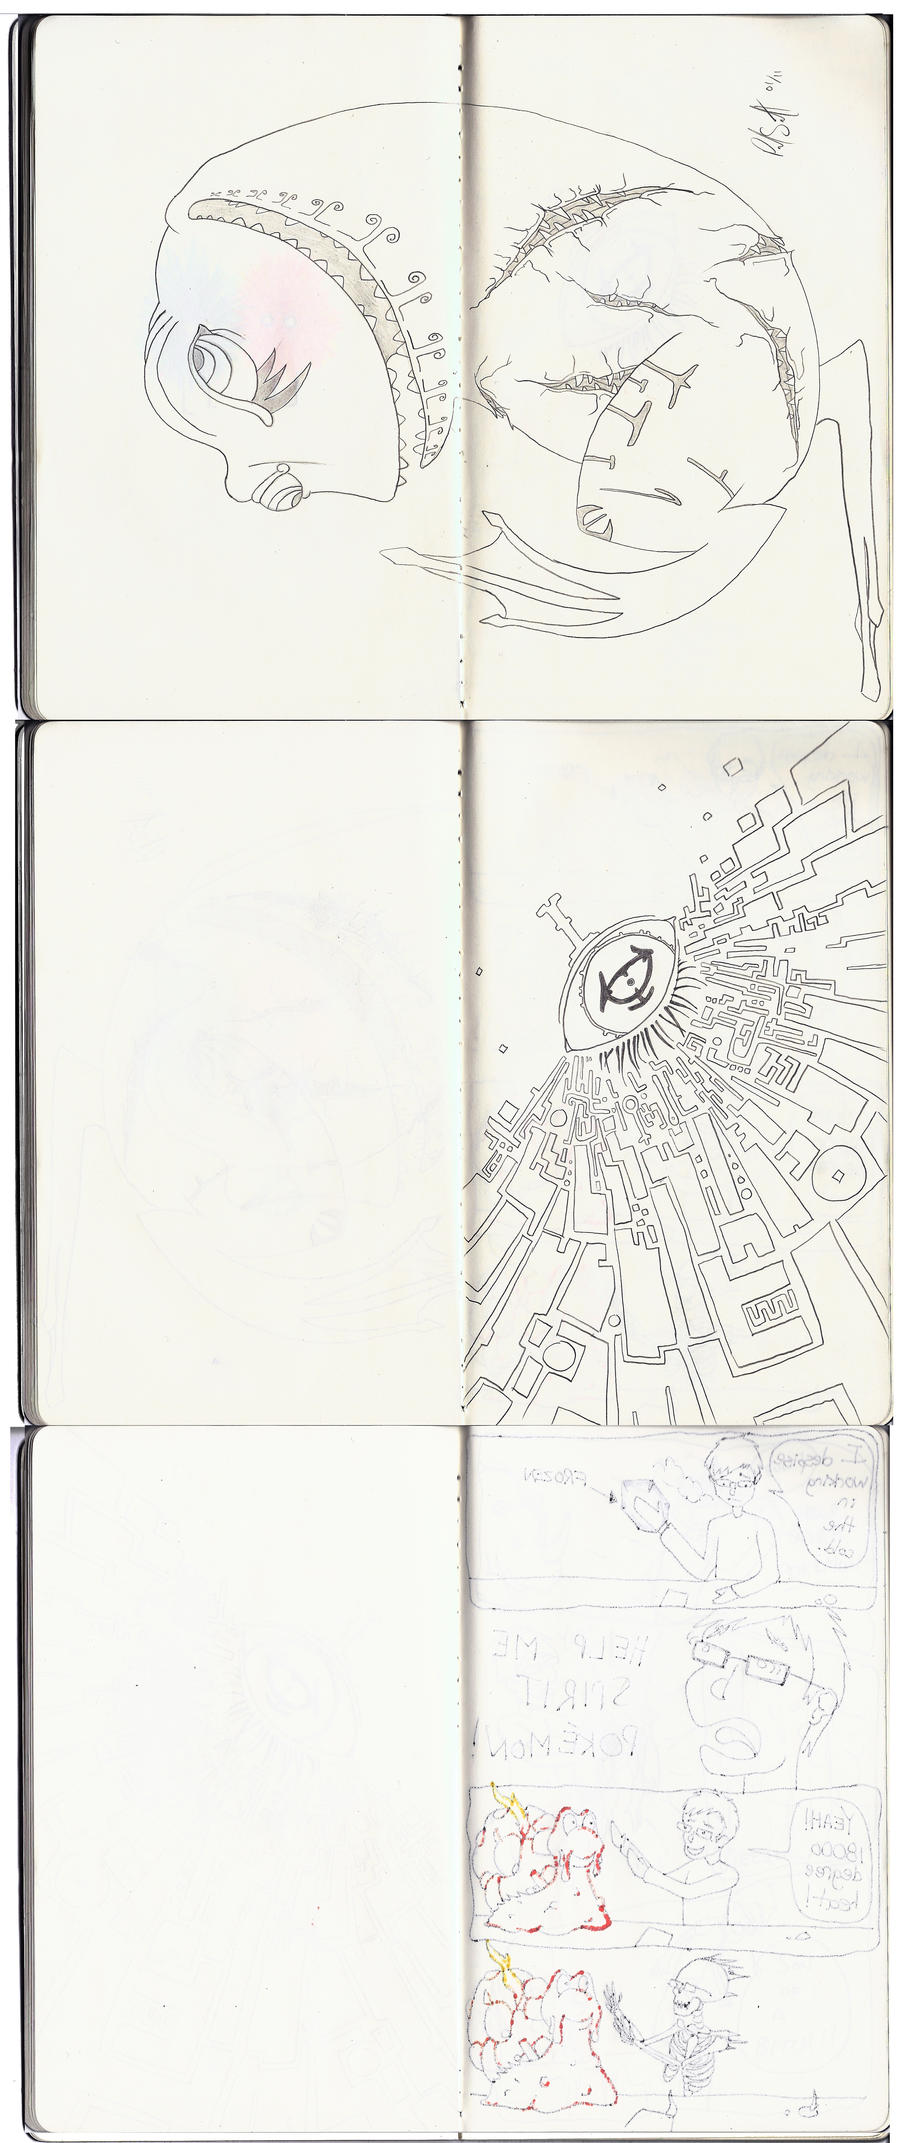 Sketchbook Project Pages 43-48